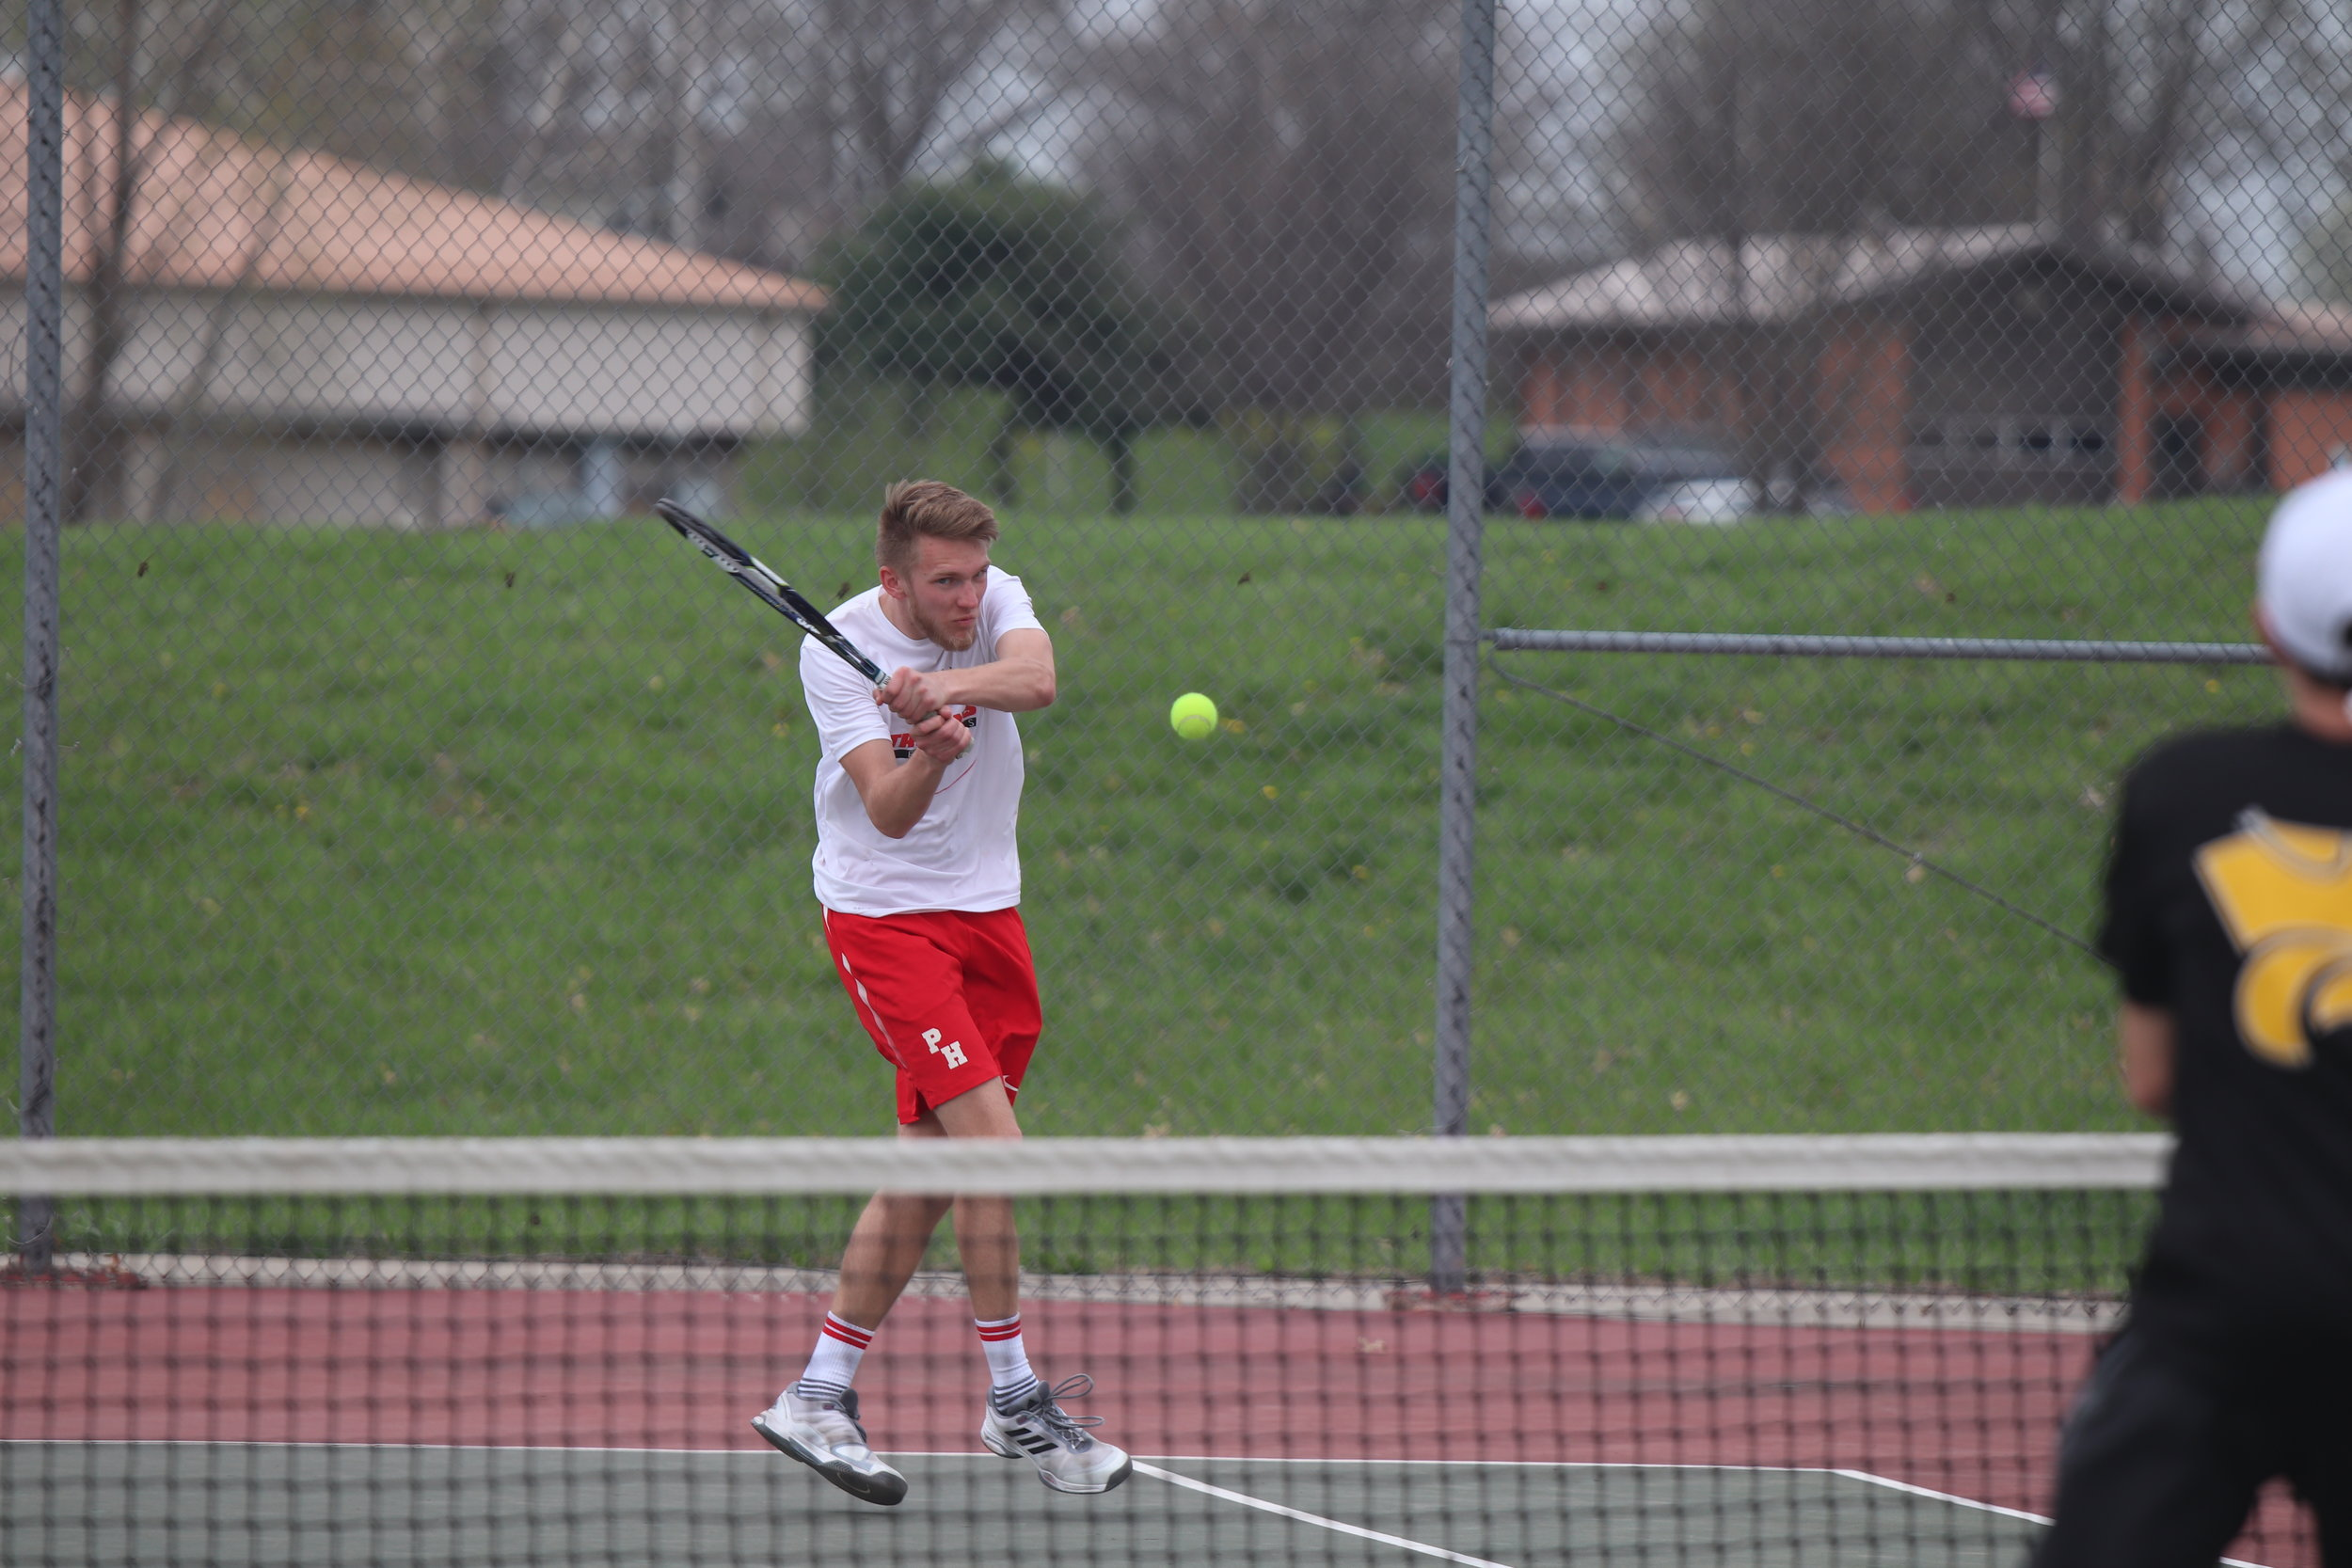 CODY THORN/Citizen photo  Park Hill's Evan Ericksen returns a shot in a match against Blue Springs on Wednesday, April 10 at the Park Hill Doubles Tournament at Barry Park in Kansas City. The Trojans finished fifth overall after beating Blue Springs.